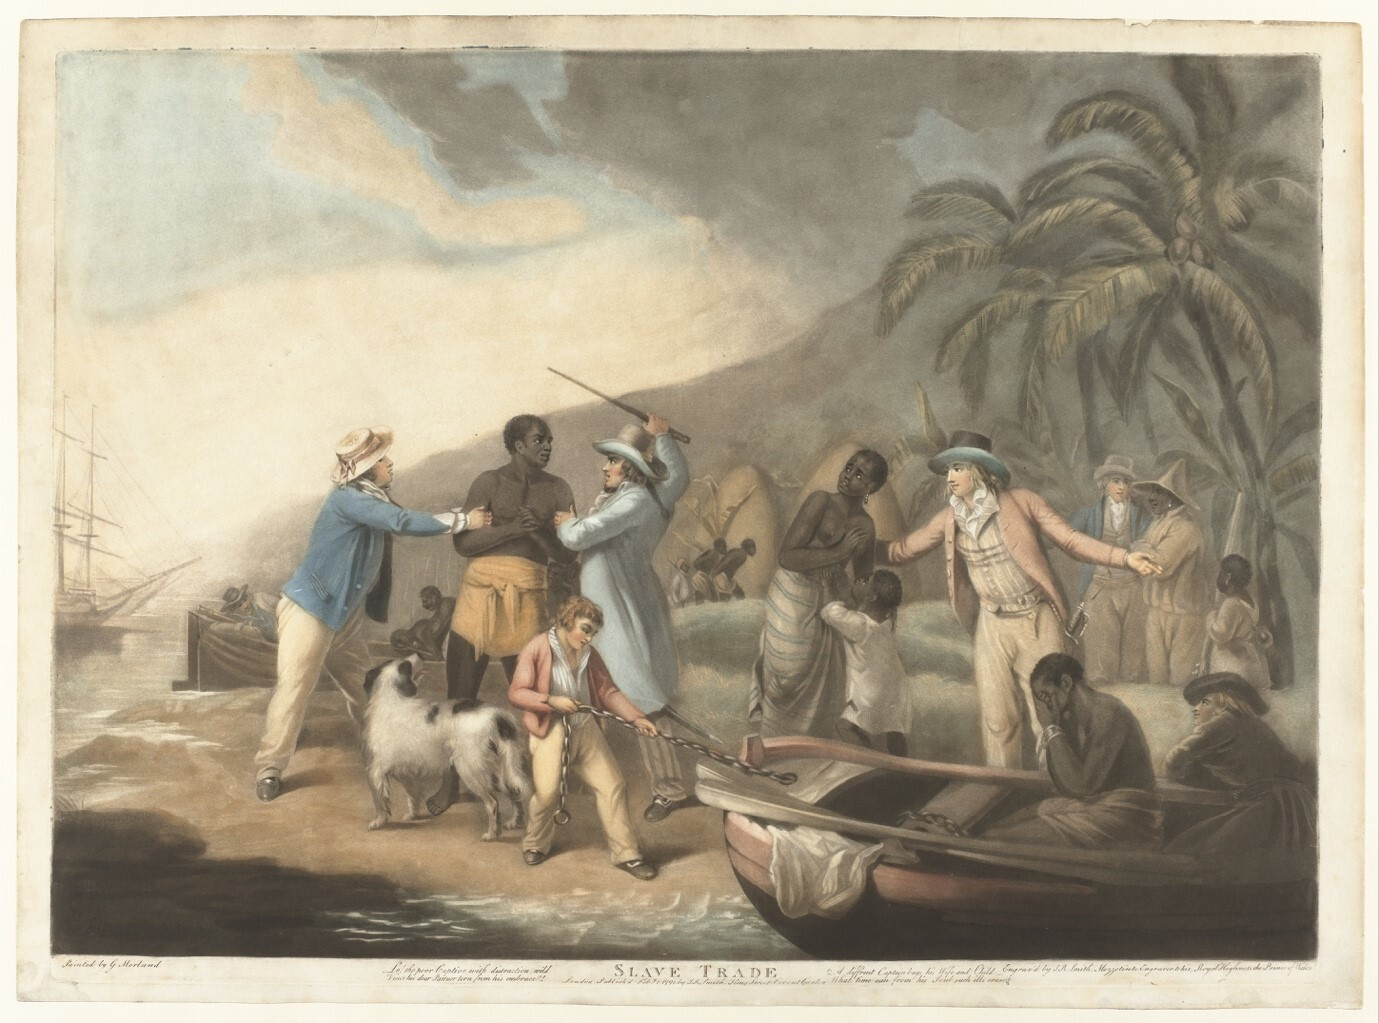 Scene on the West African coast. On the left, two European men hit an African man. On the right, another European man takes his wife and child. On the right, a rowboat is hauled in in which an enslaved man holds his hands over his face.